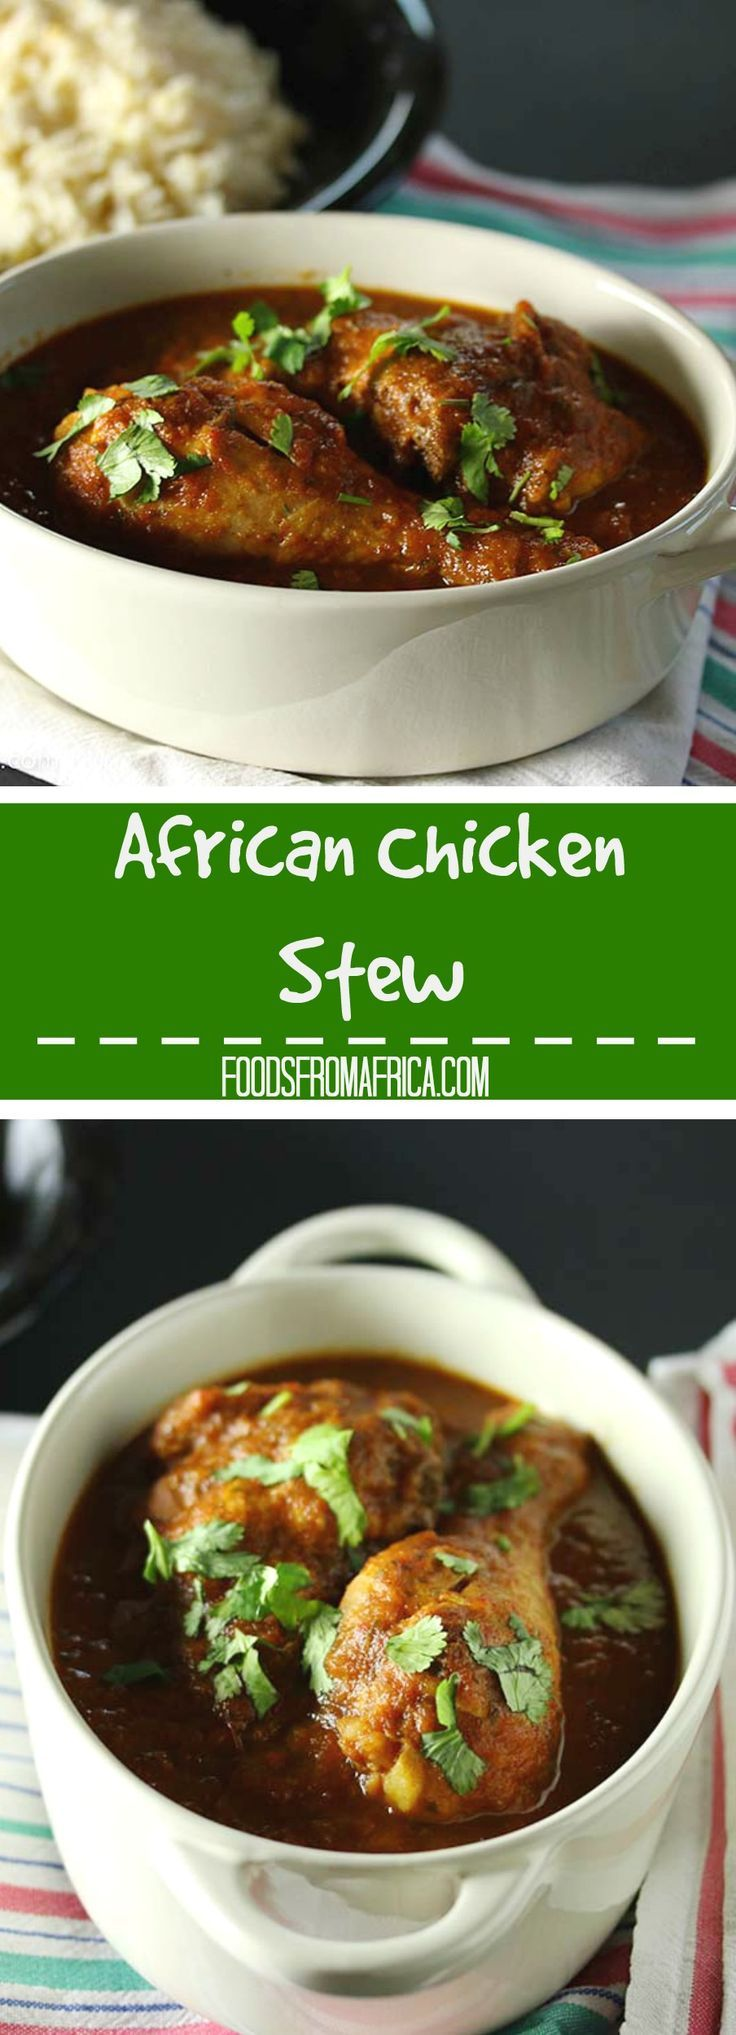 79 best african food recipes images on pinterest african recipes african chicken stew african stewwest african foodafrican food recipesethnic forumfinder Image collections